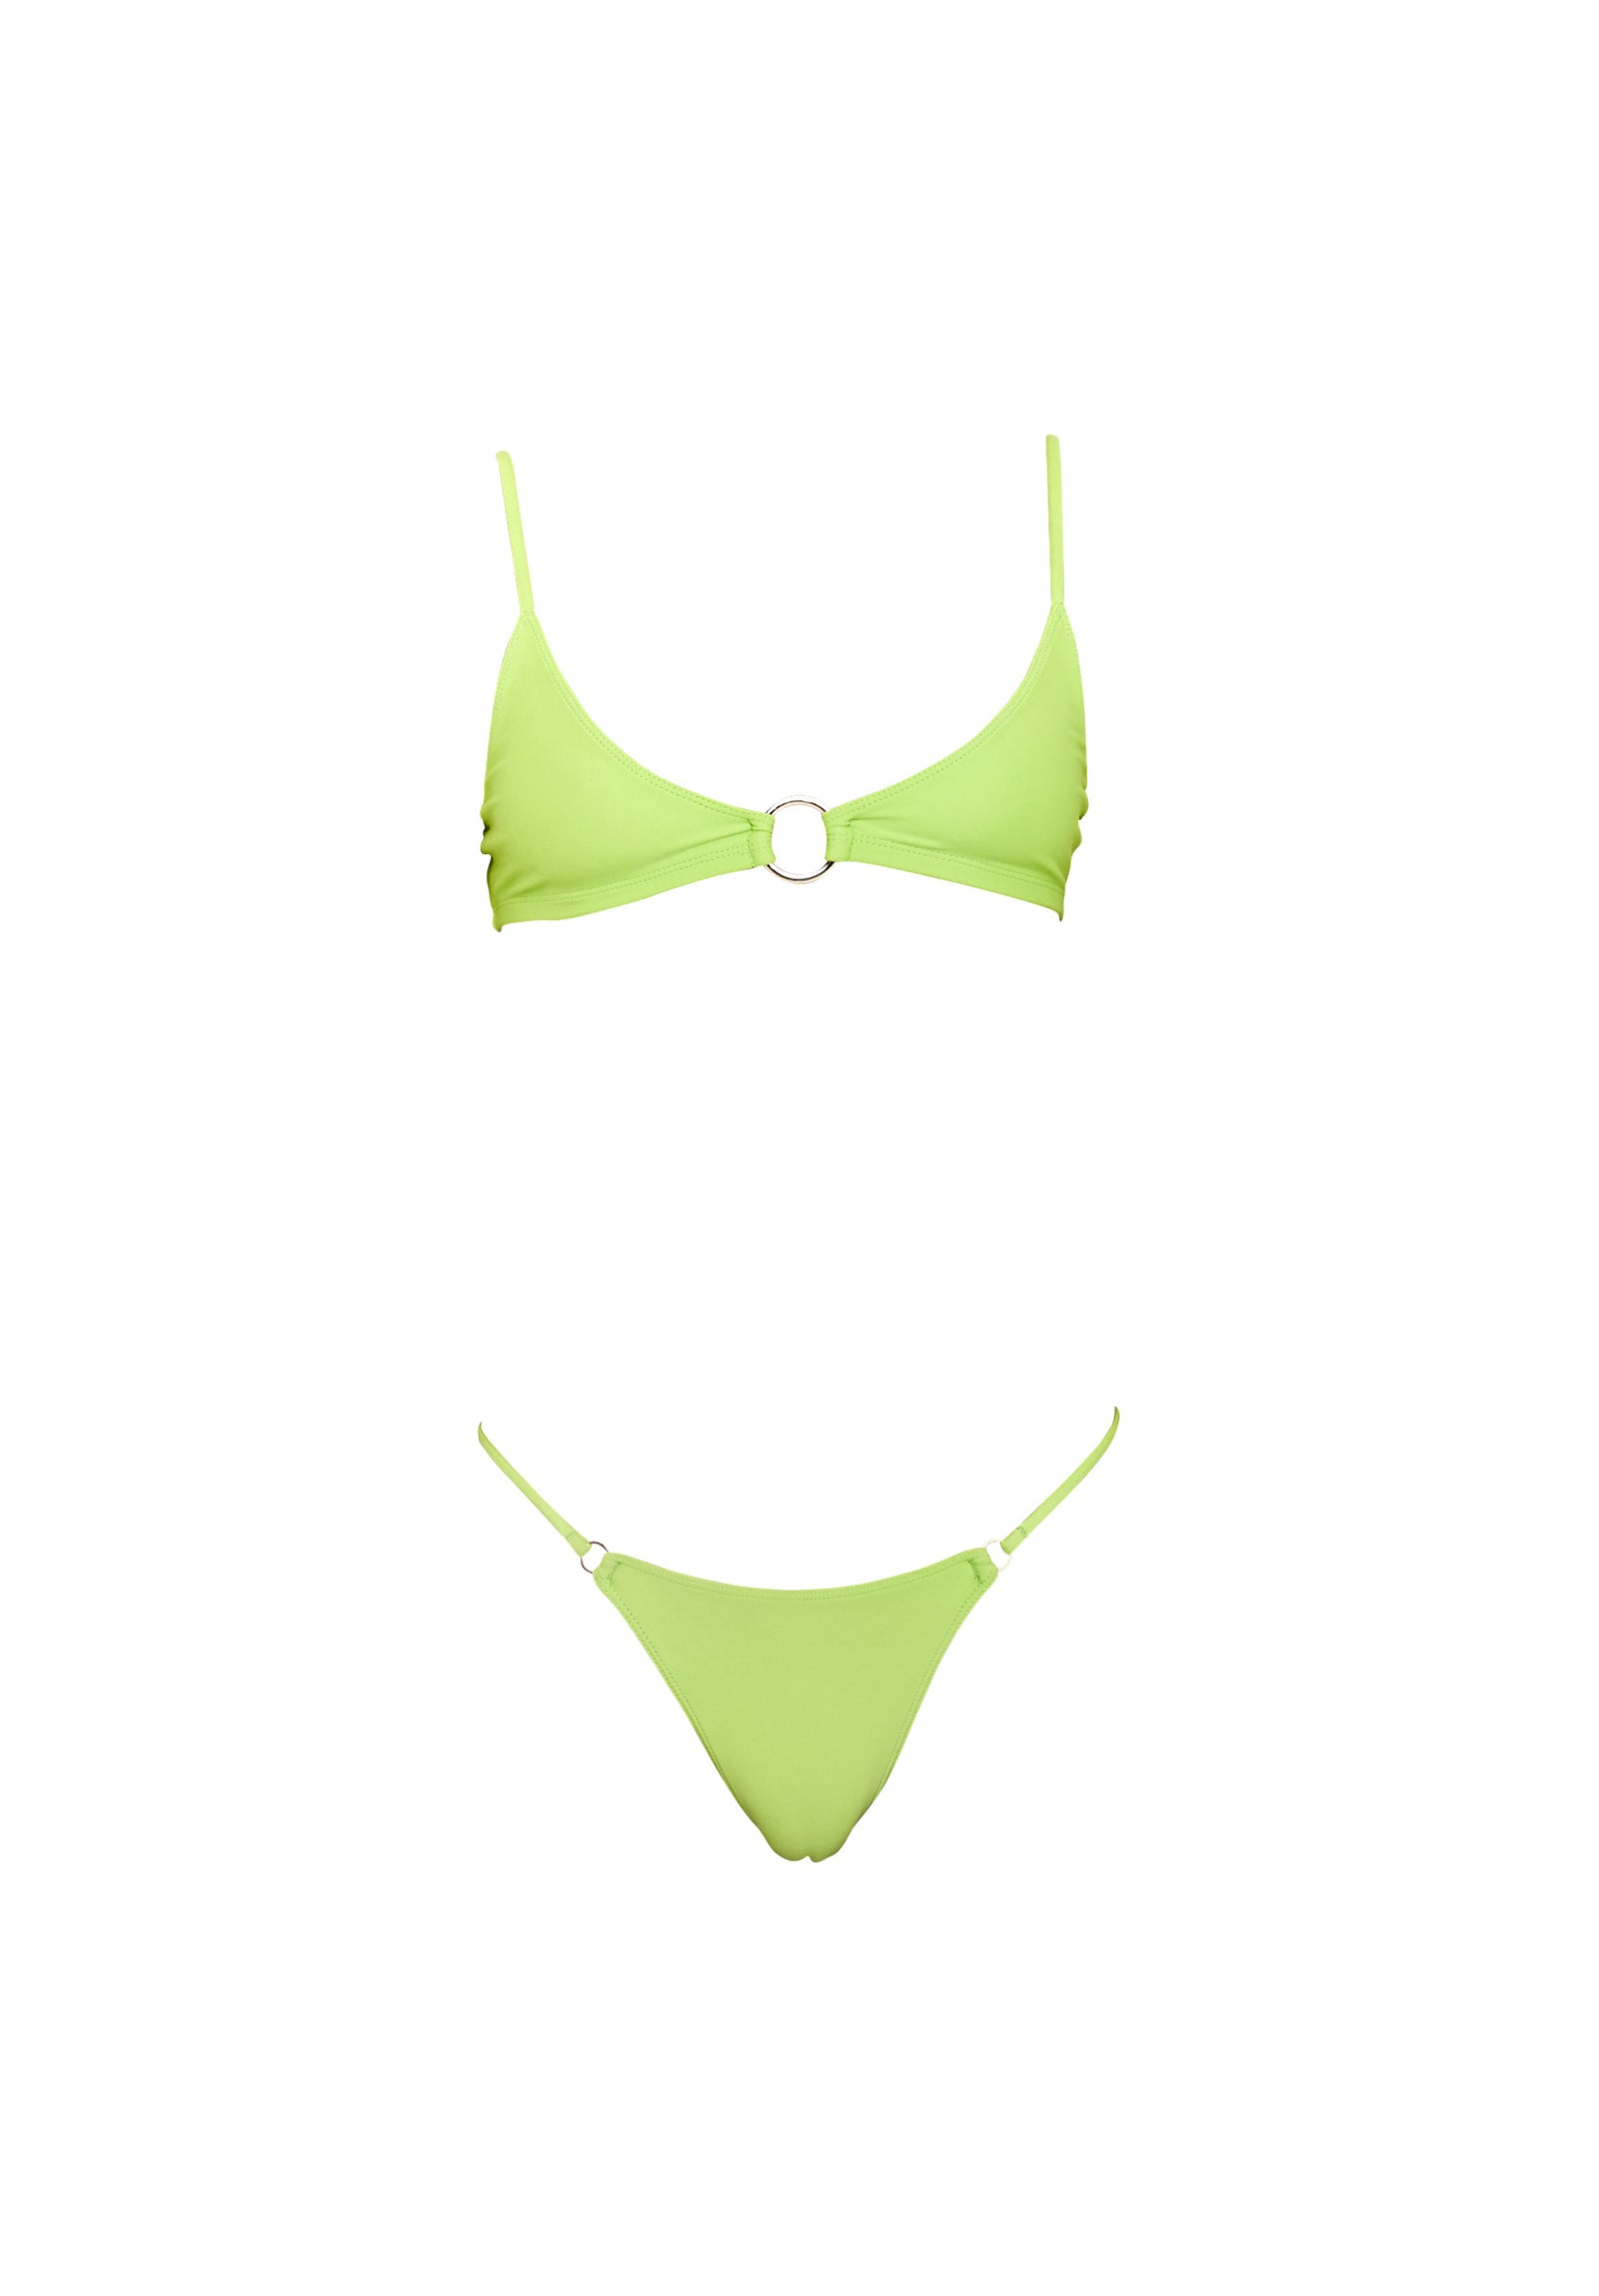 RINGLEADER top – lime green